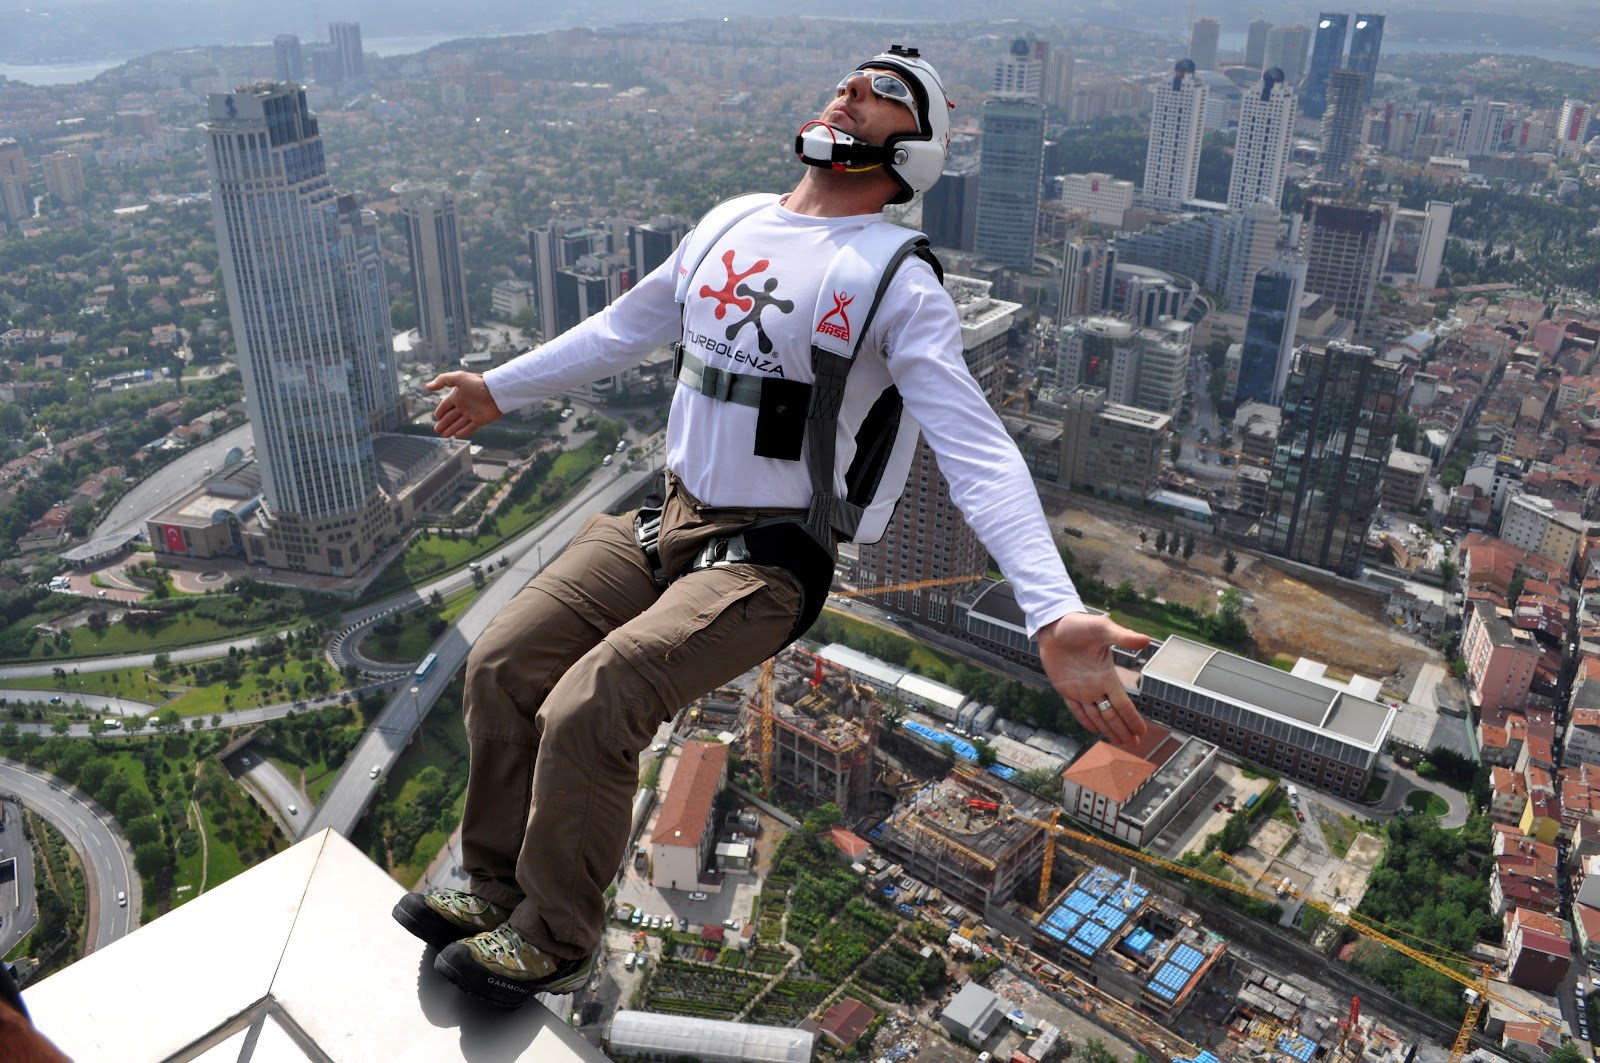 File:BASE Jumping from Sapphire Tower in Istanbul.jpg - Wikimedia ...